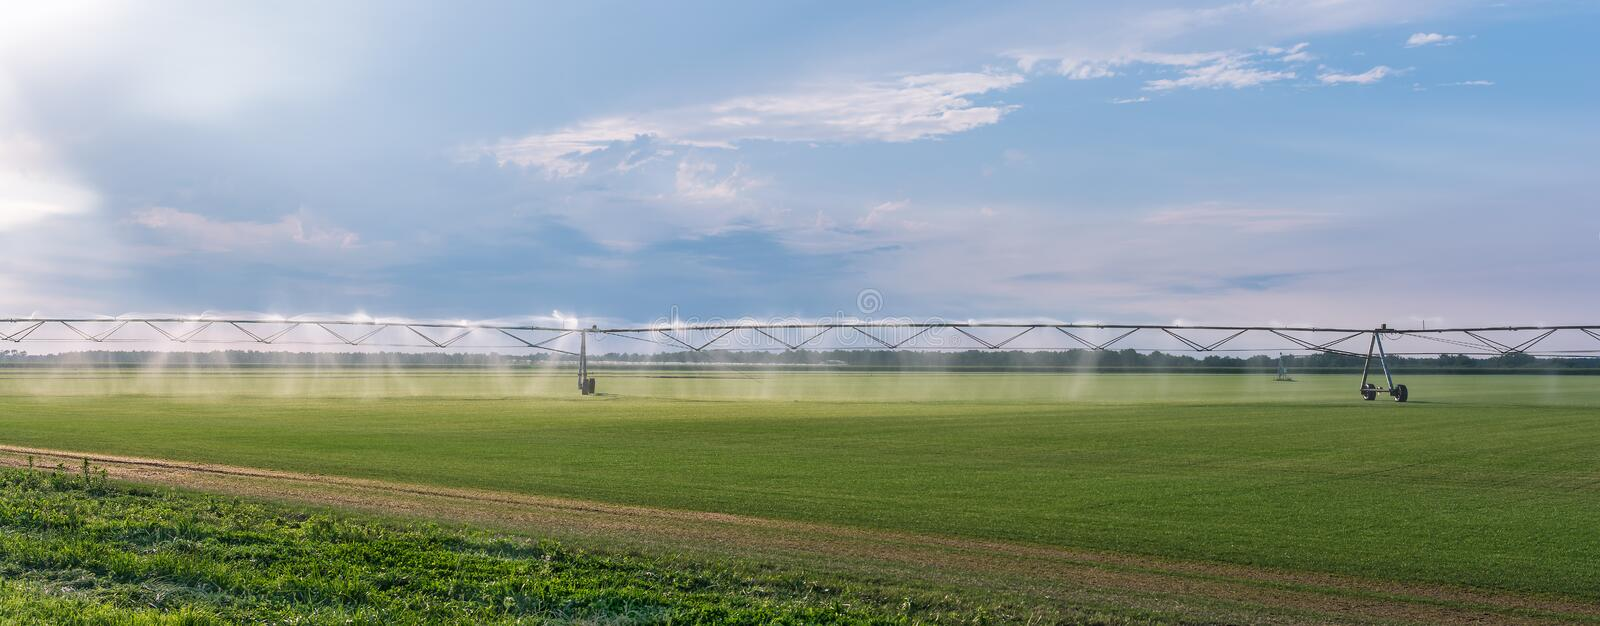 Panorama of the automated farming irrigation sprinklers system on cultivated agricultural landscape field stock photos